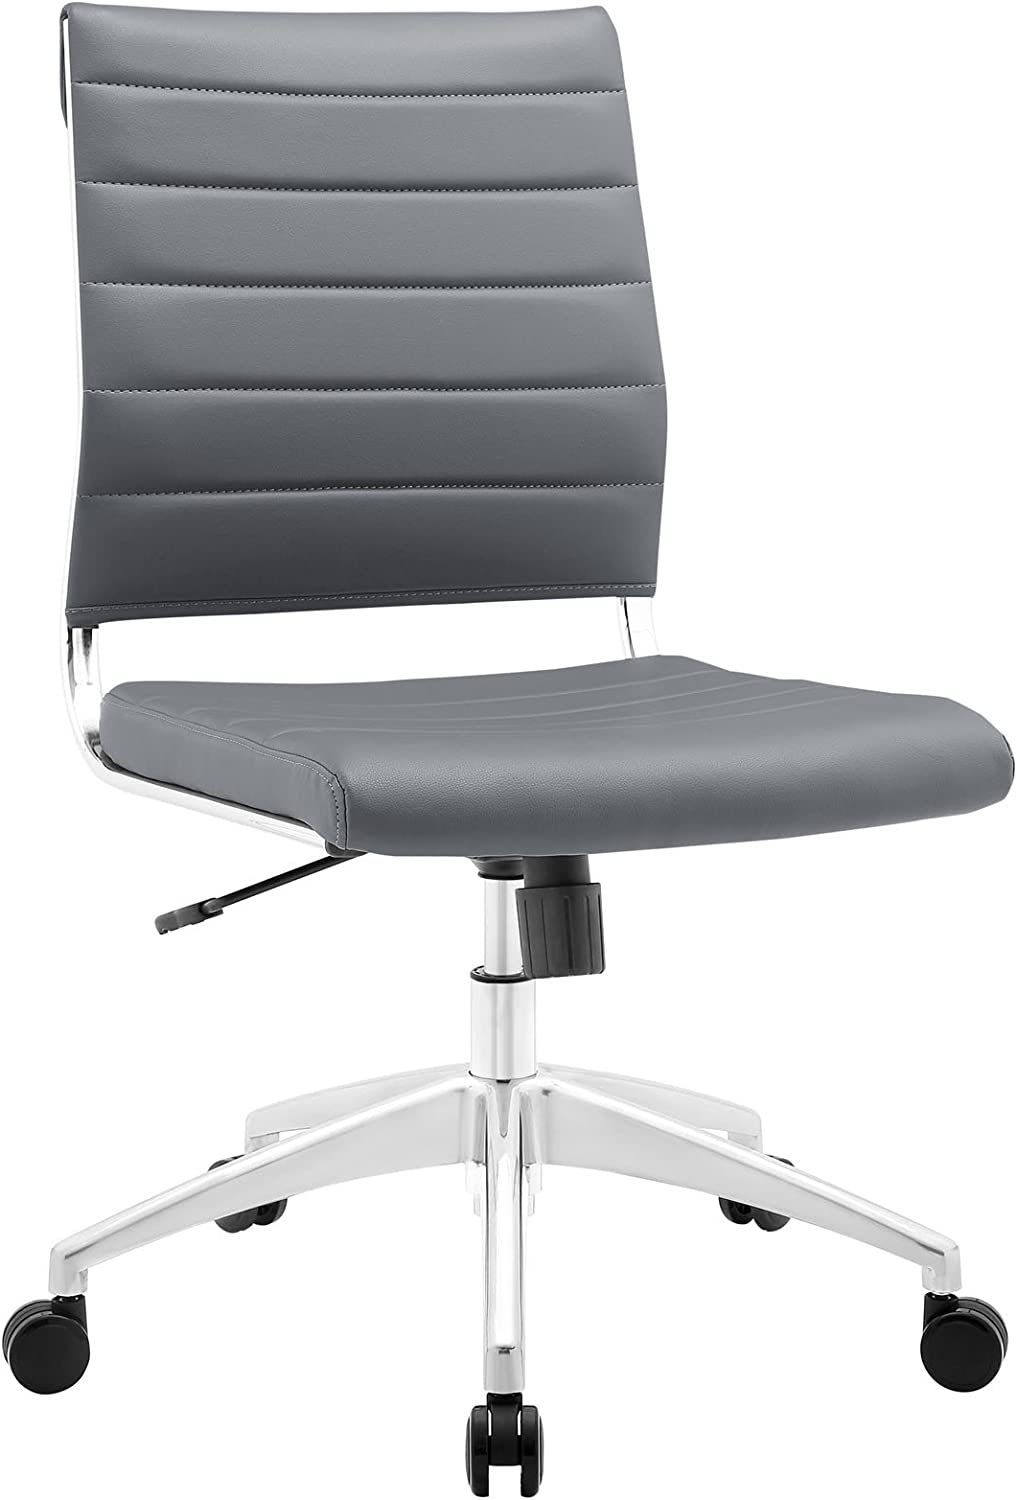 Modway EEI-1525-GRY Jive Office Chair, Armless Mid Back, Gray